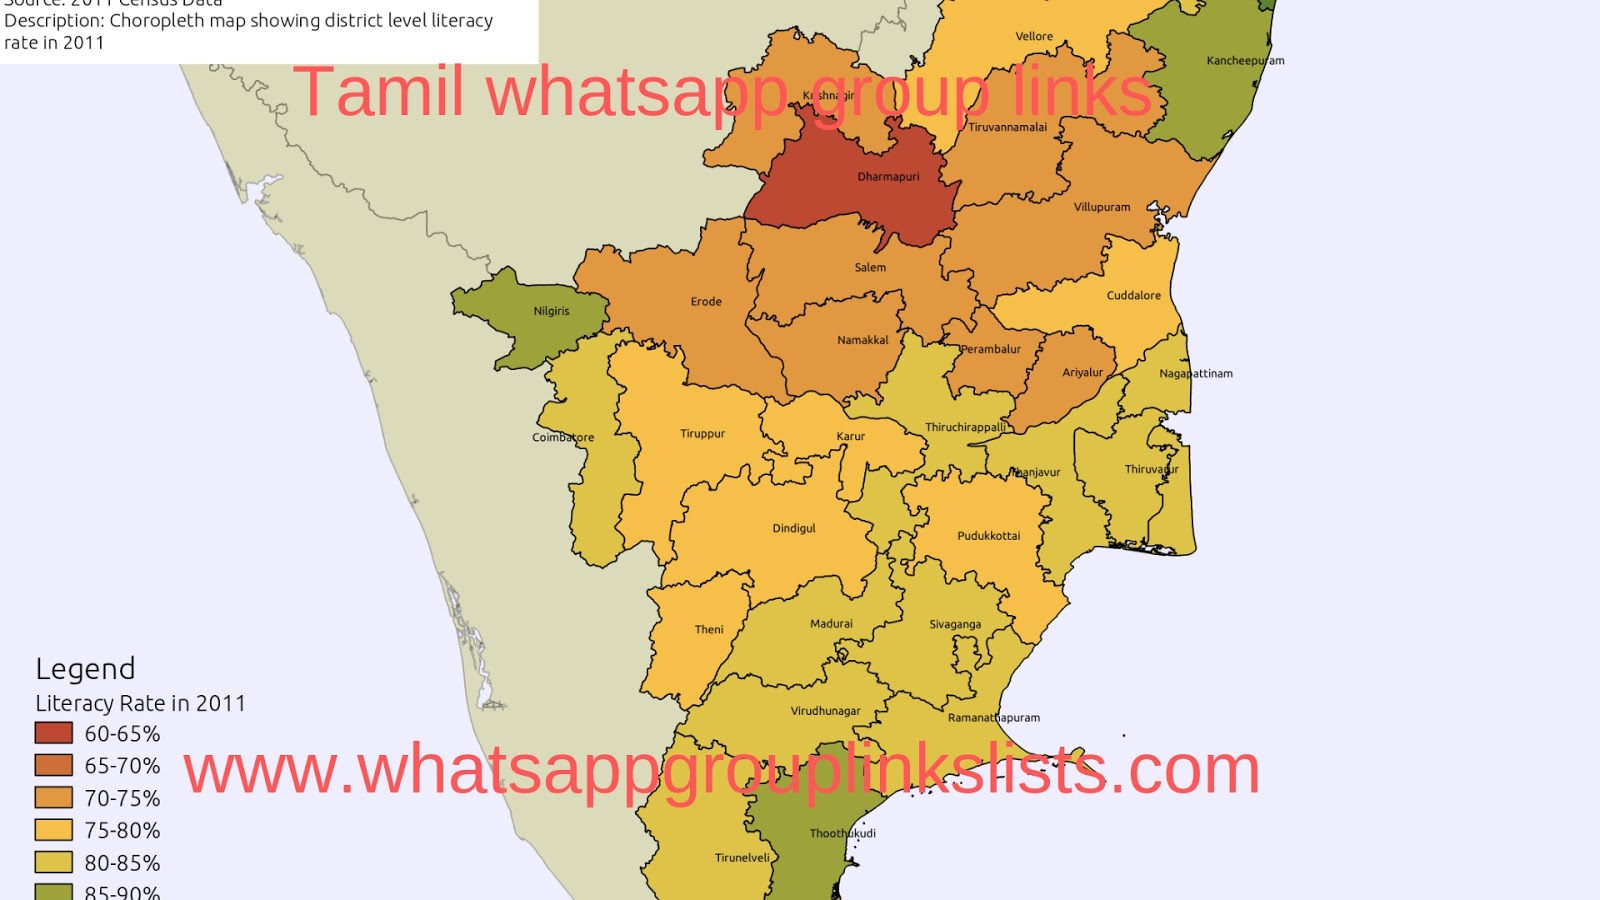 JOIN TAMILNADU WHATSAPP GROUP LINKS